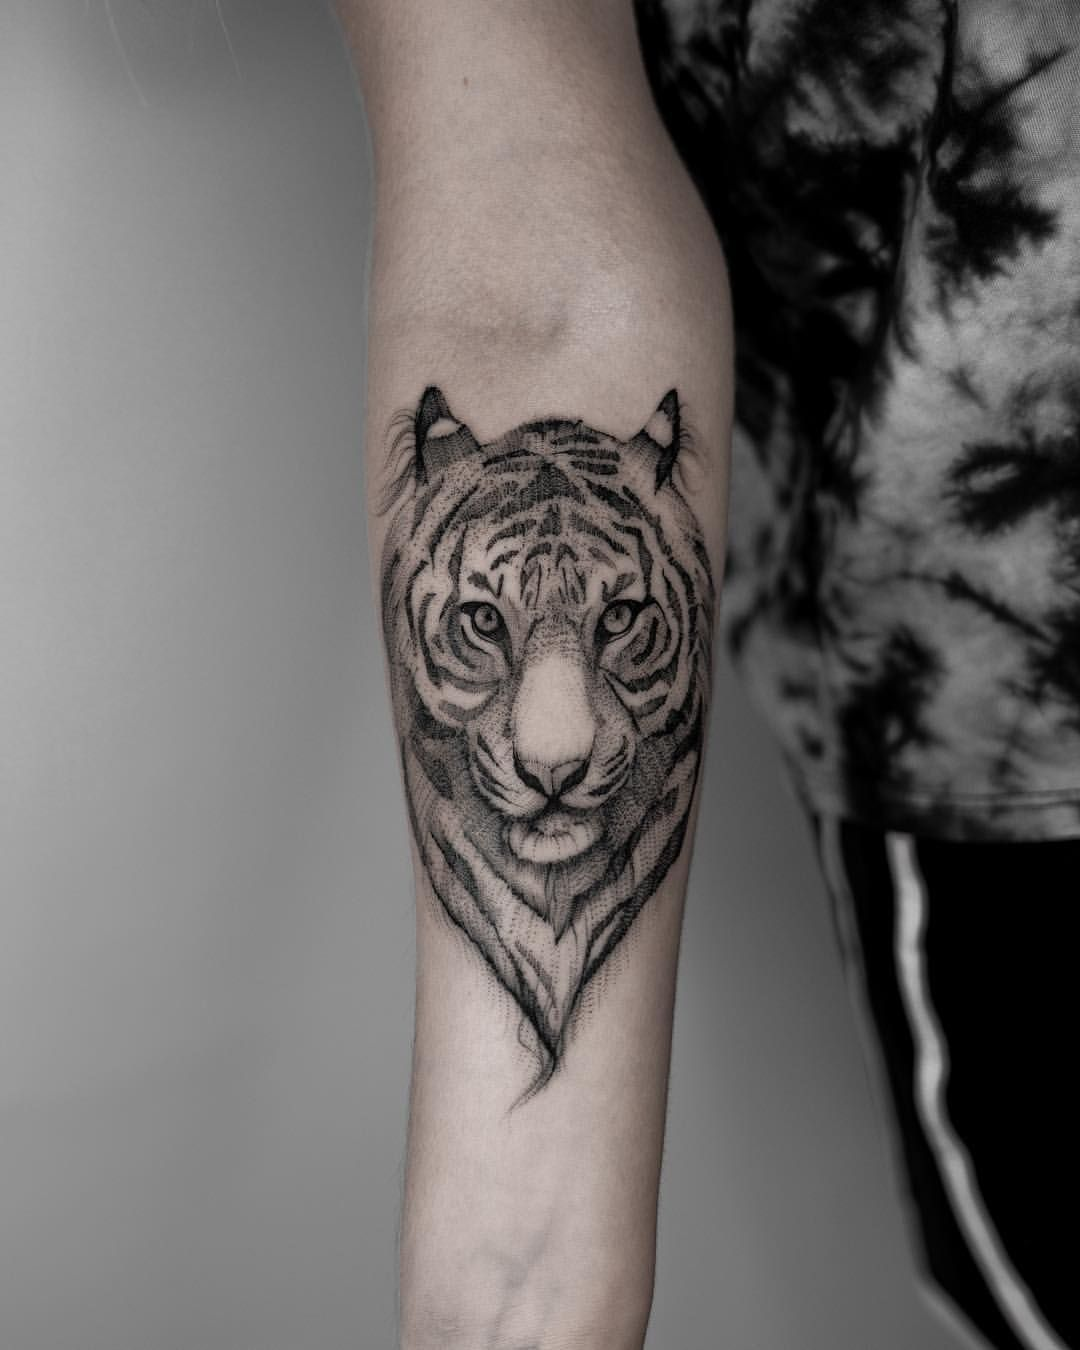 Rawr Tiger Tattoo Cute Delicate Feminine Tattoos Flowers And Florals Animal Tattoo Drawings An Delicate Feminine Tattoos Feminine Tattoos Fine Line Tattoos